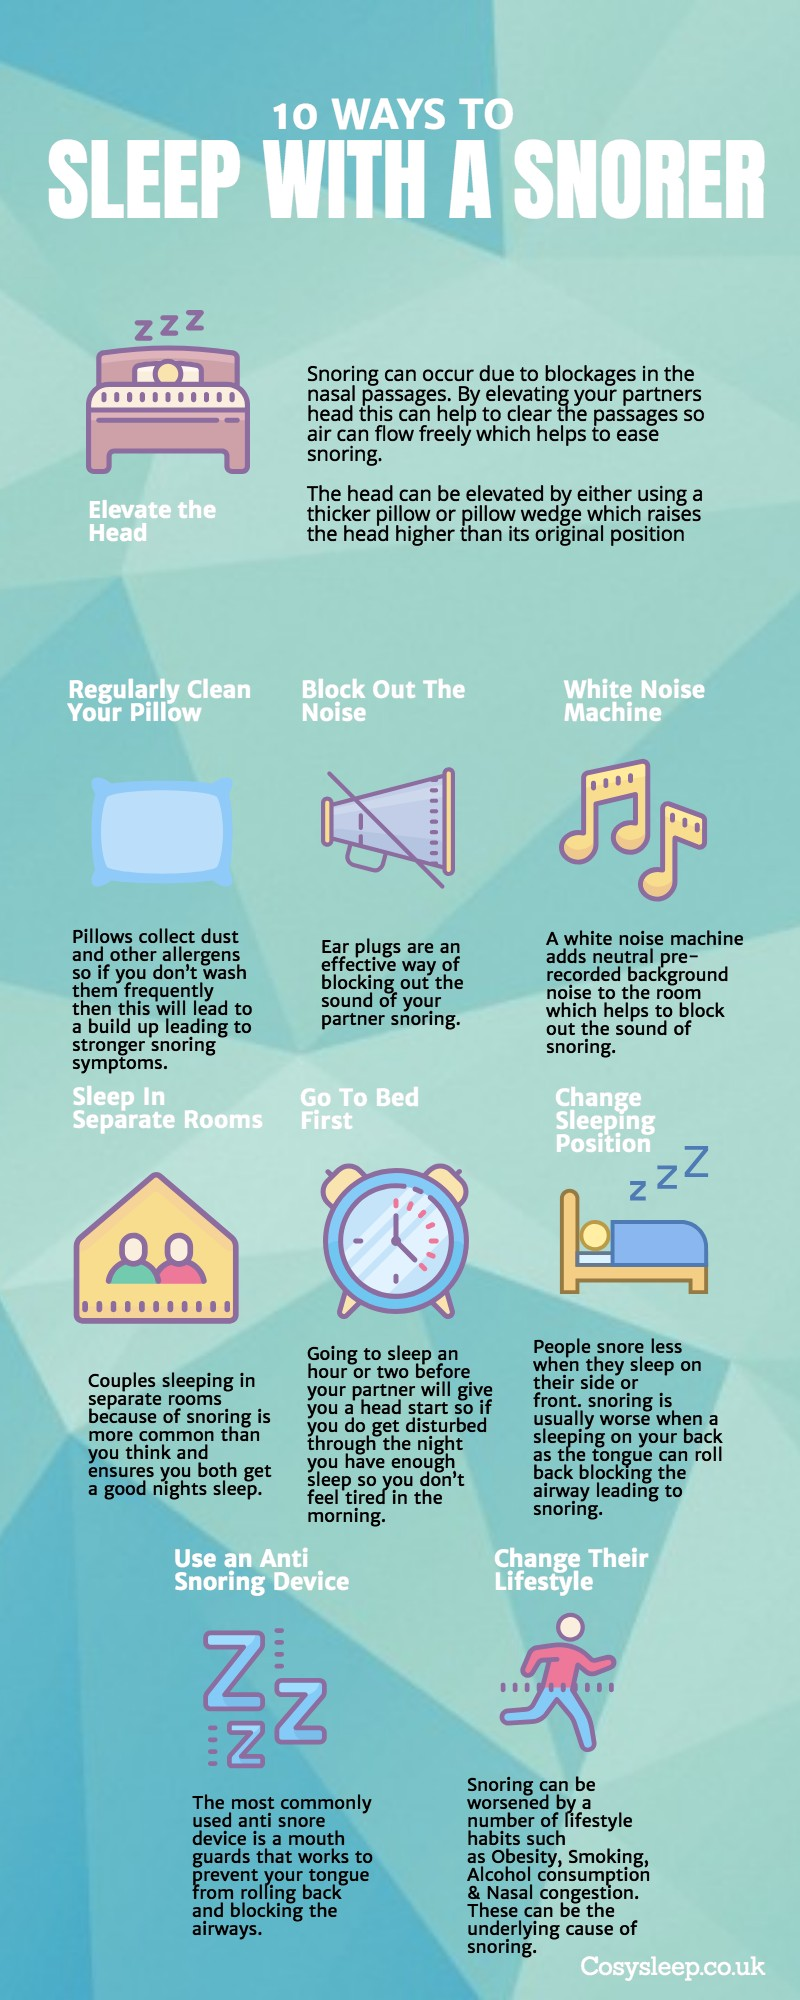 9 Ways to Cope With Sleeping With a Snorer [Infographic